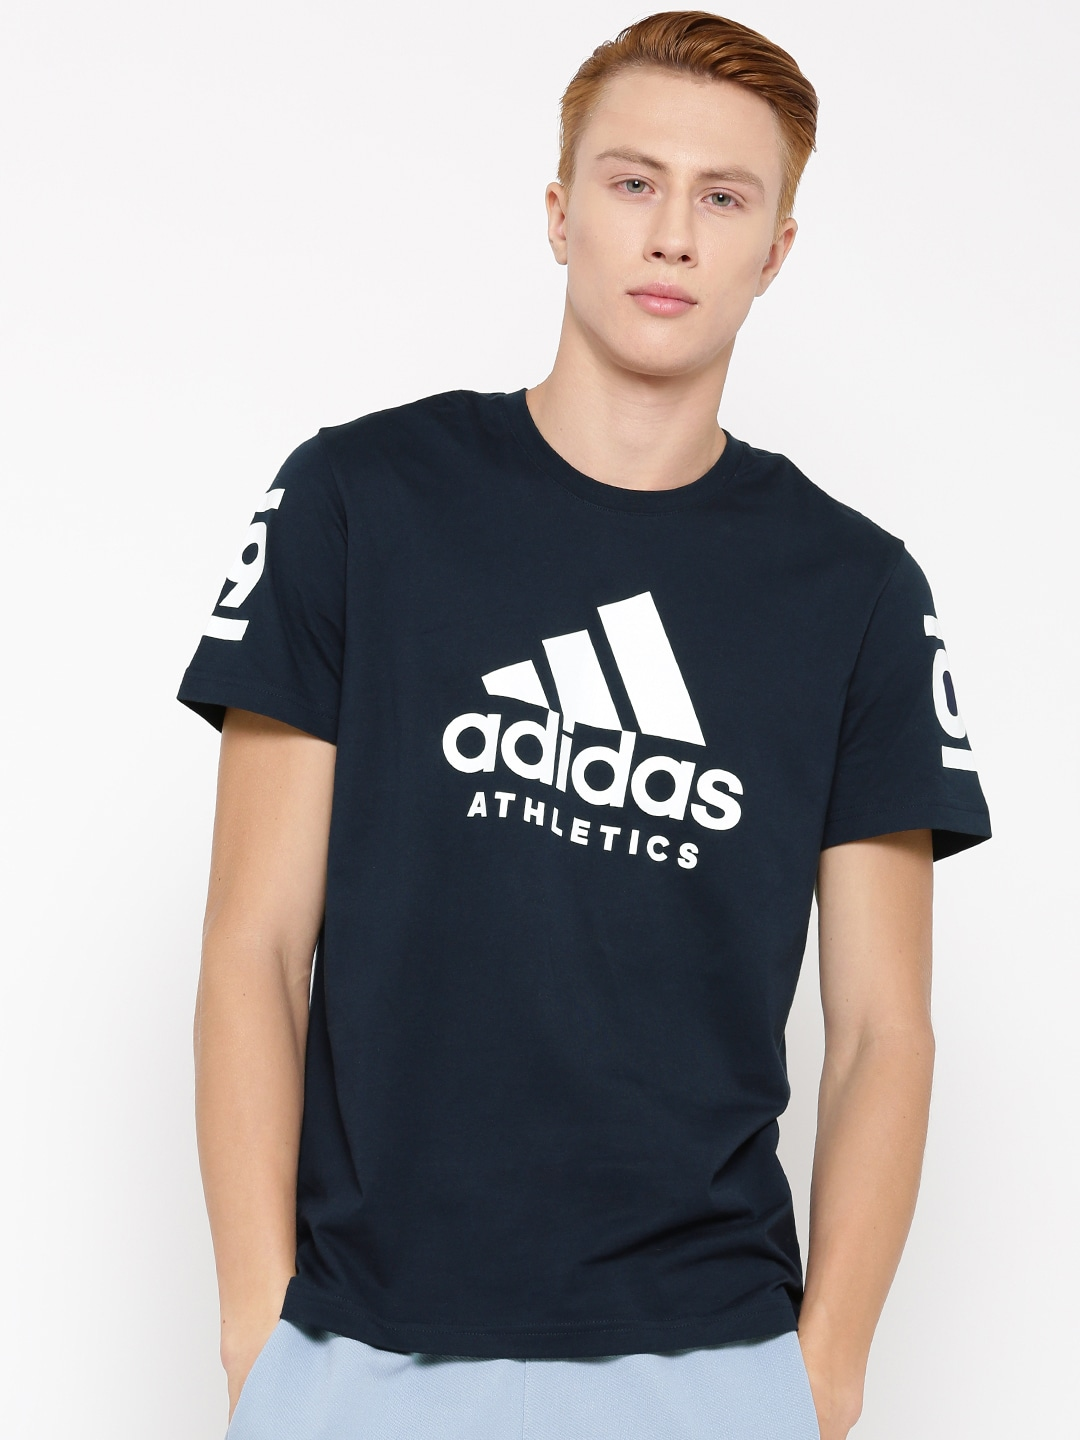 Design your own t shirt india cash on delivery - Adidas Men Navy 360 Printed Round Neck T Shirt